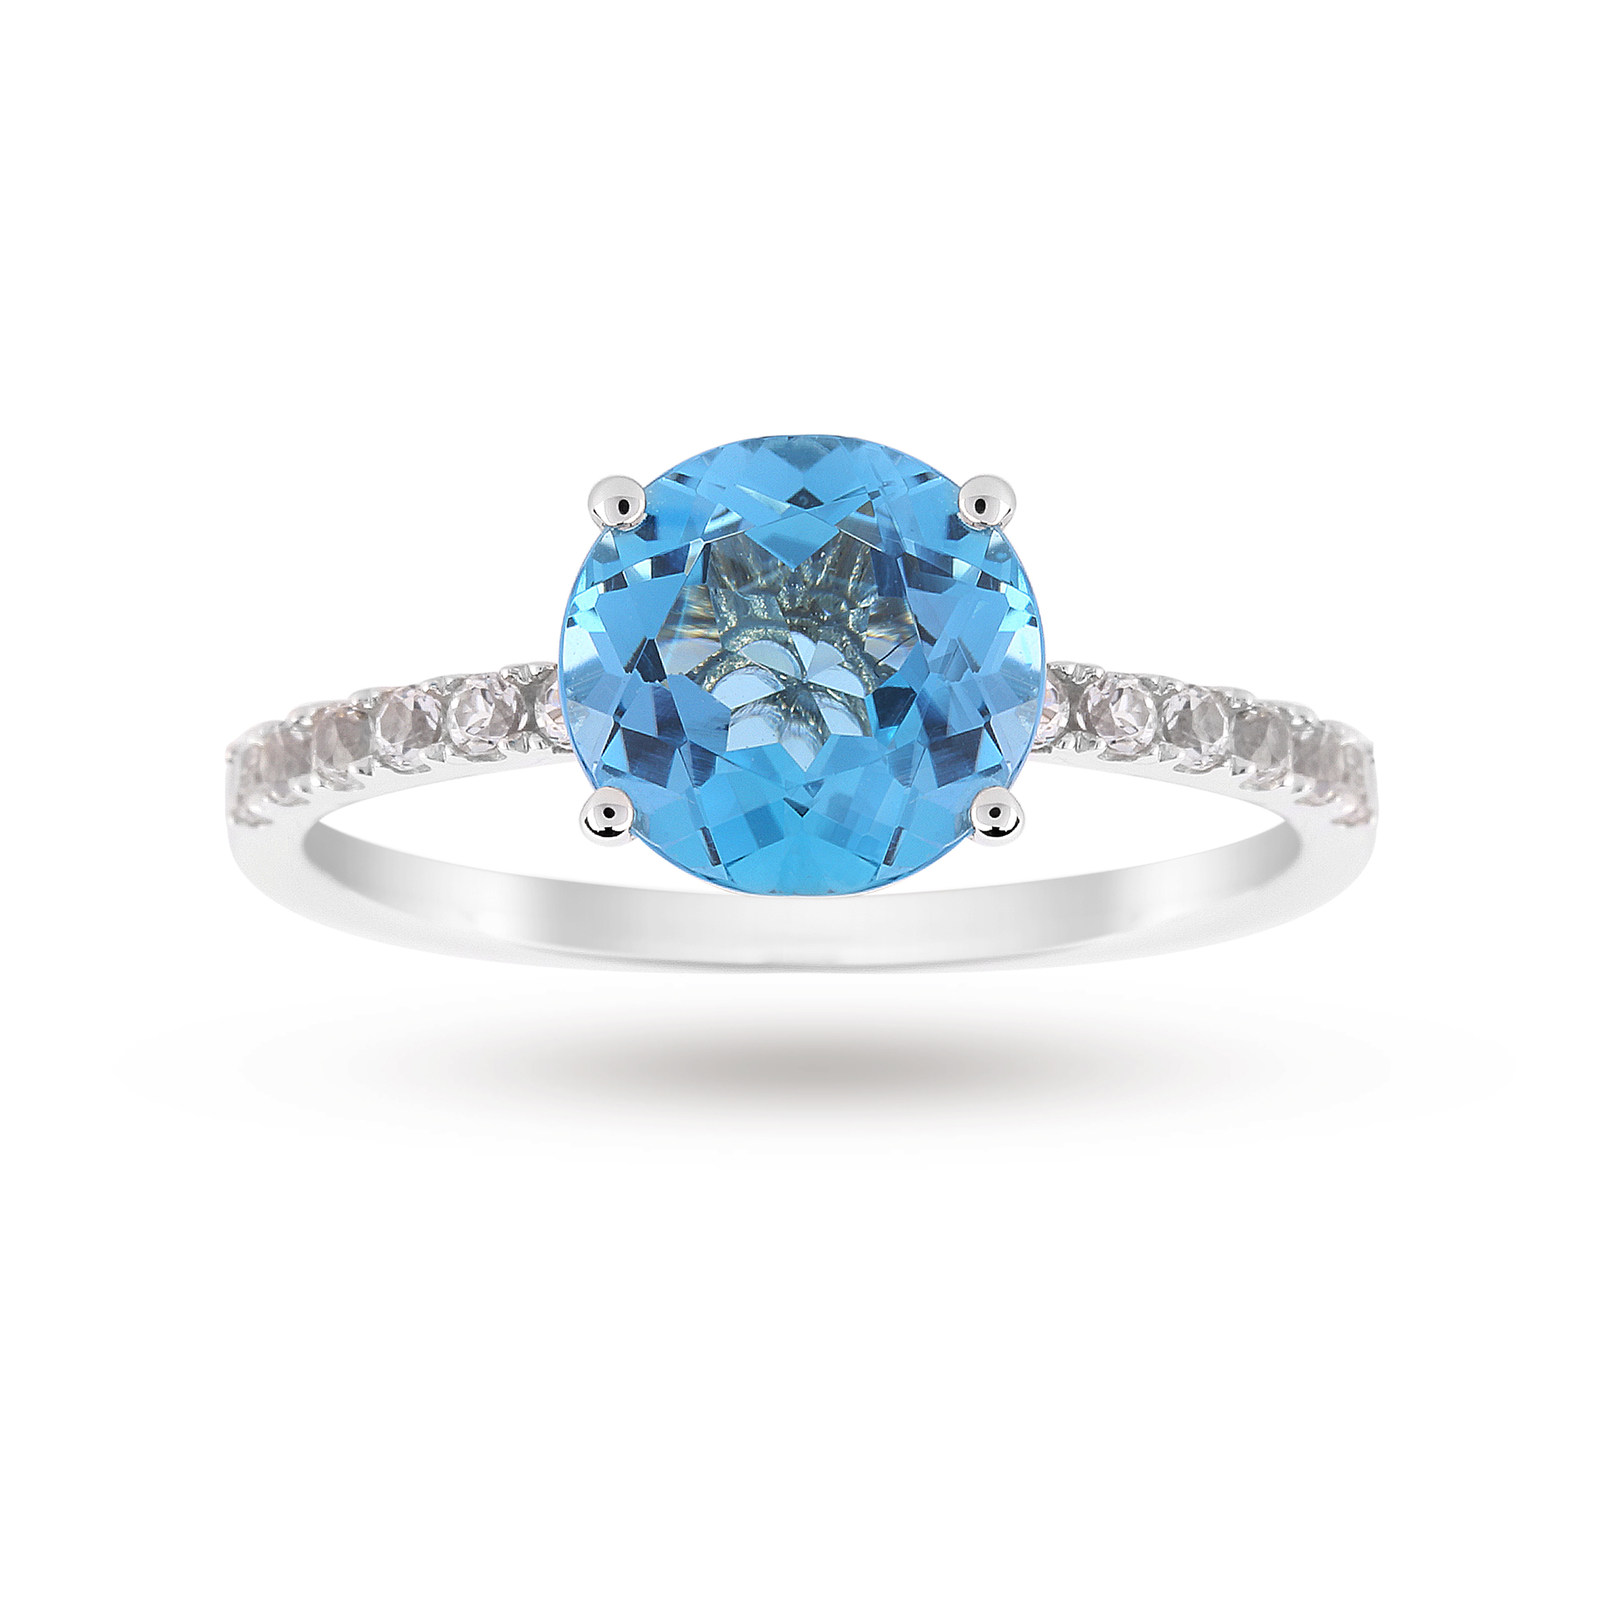 buy cheap topaz ring compare women 39 s jewellery prices for best uk deals. Black Bedroom Furniture Sets. Home Design Ideas